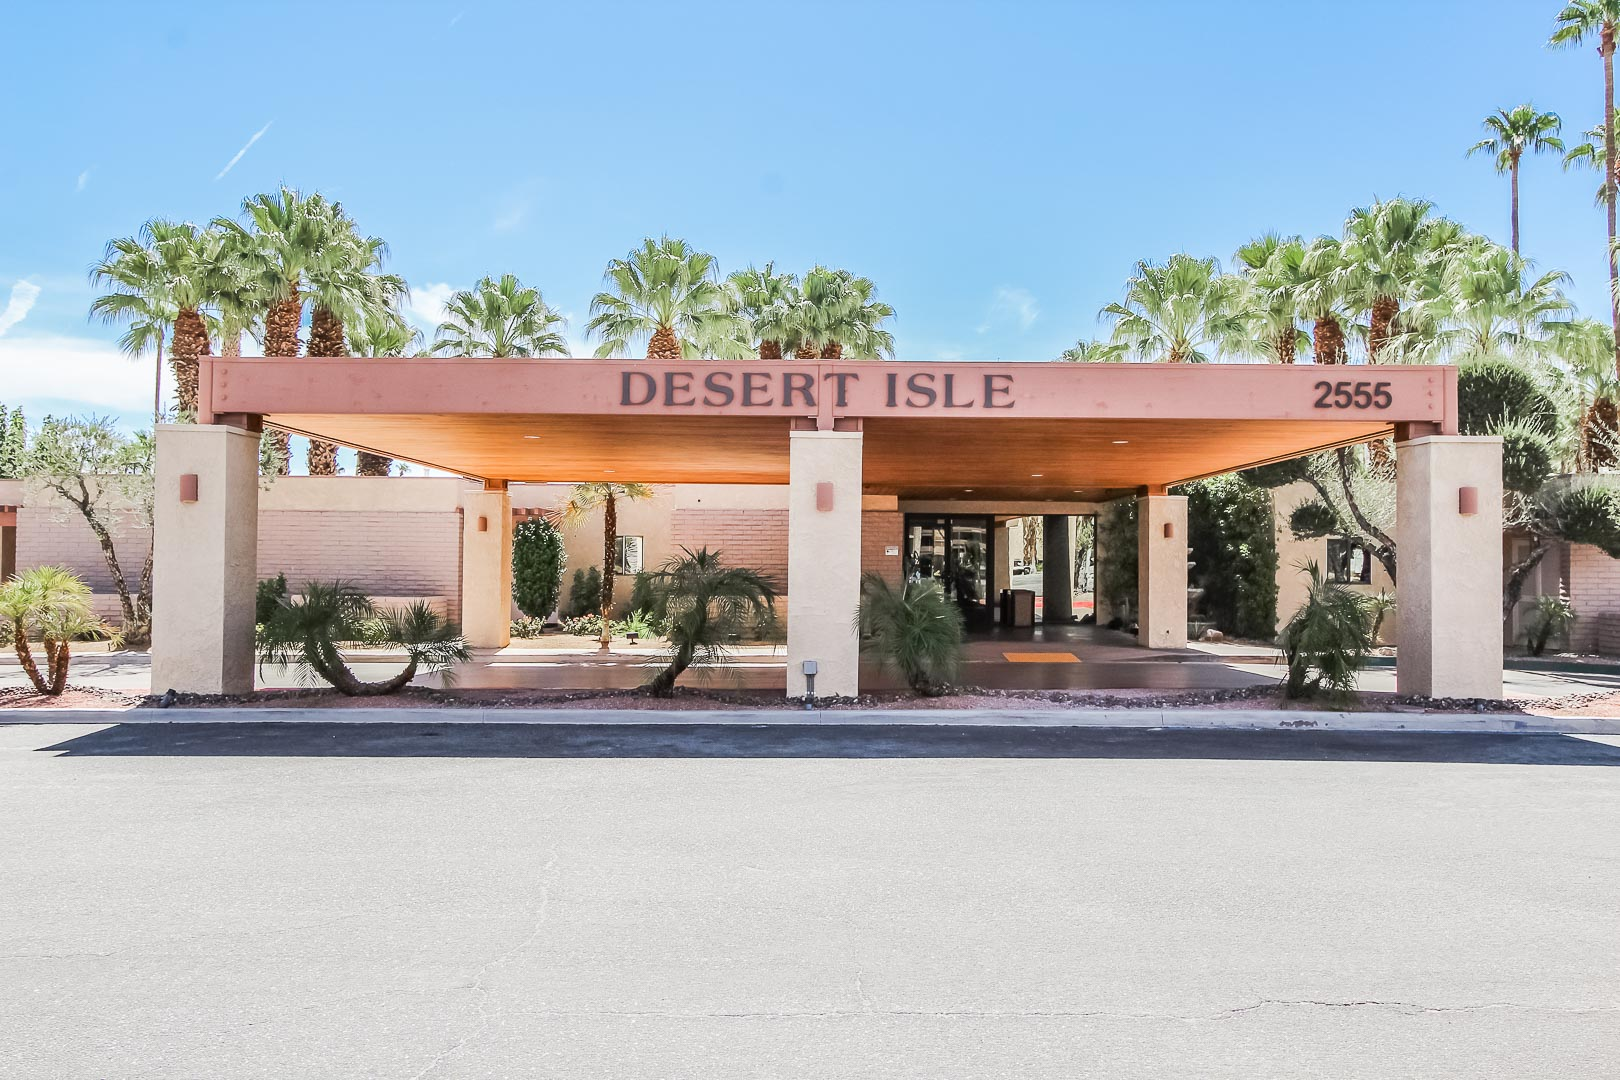 A stoic resort entrance at VRI's Desert Isle Resort in California.